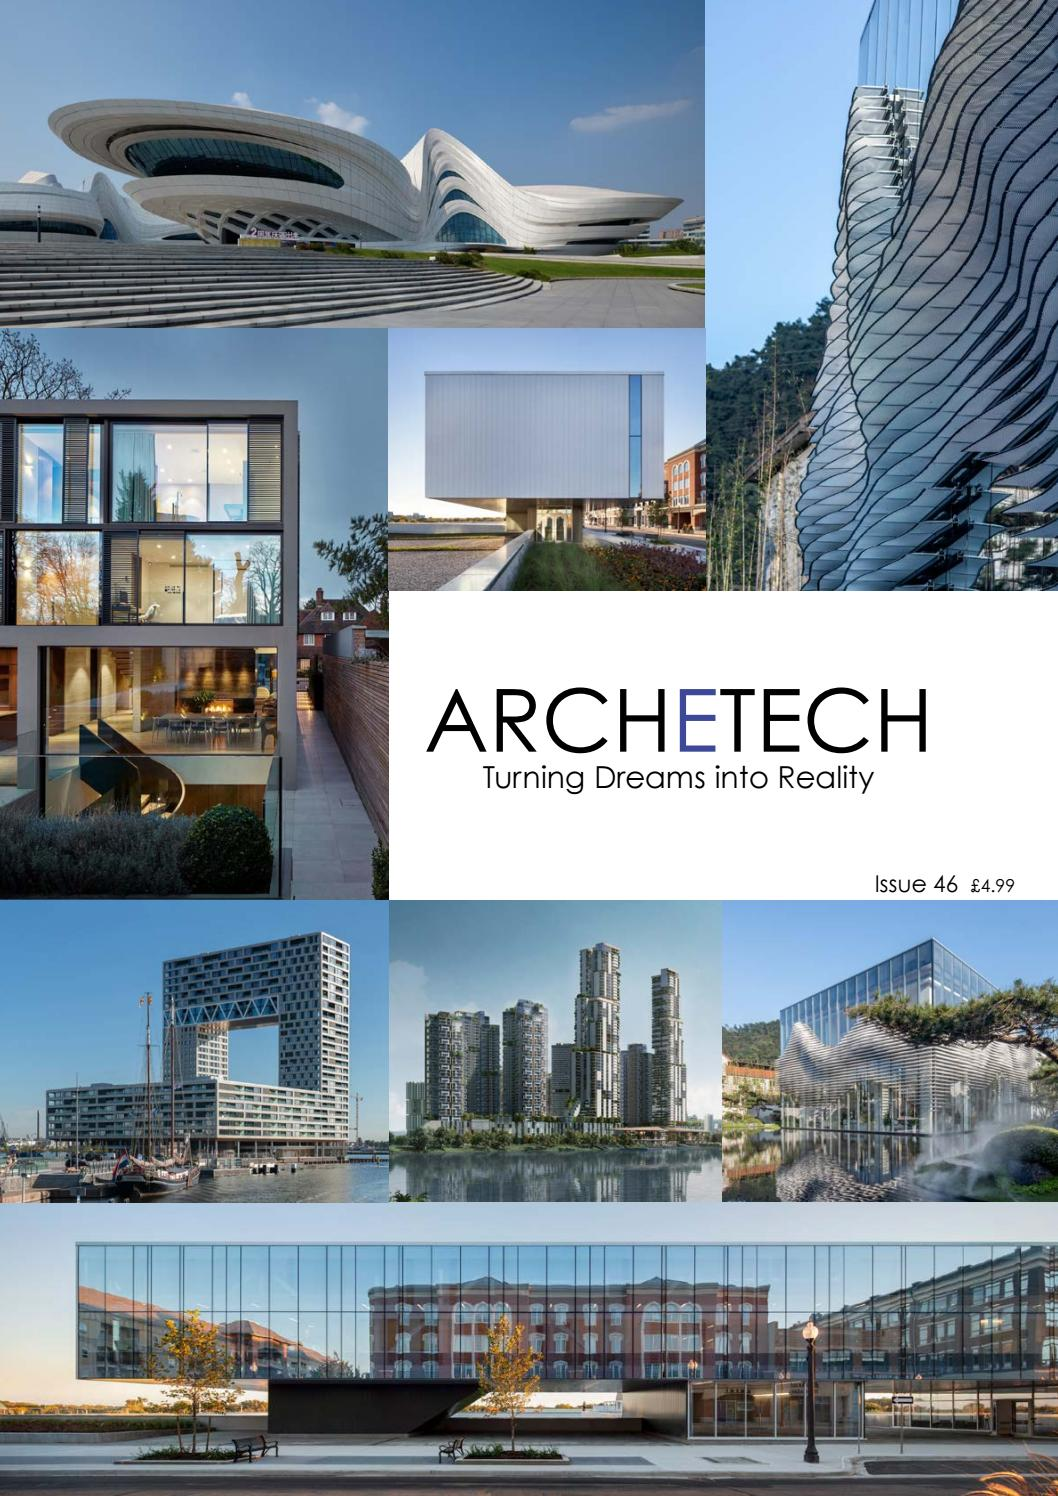 Expert Feng Shui Toulouse archetech - issue 46 2020archetech media ltd - issuu